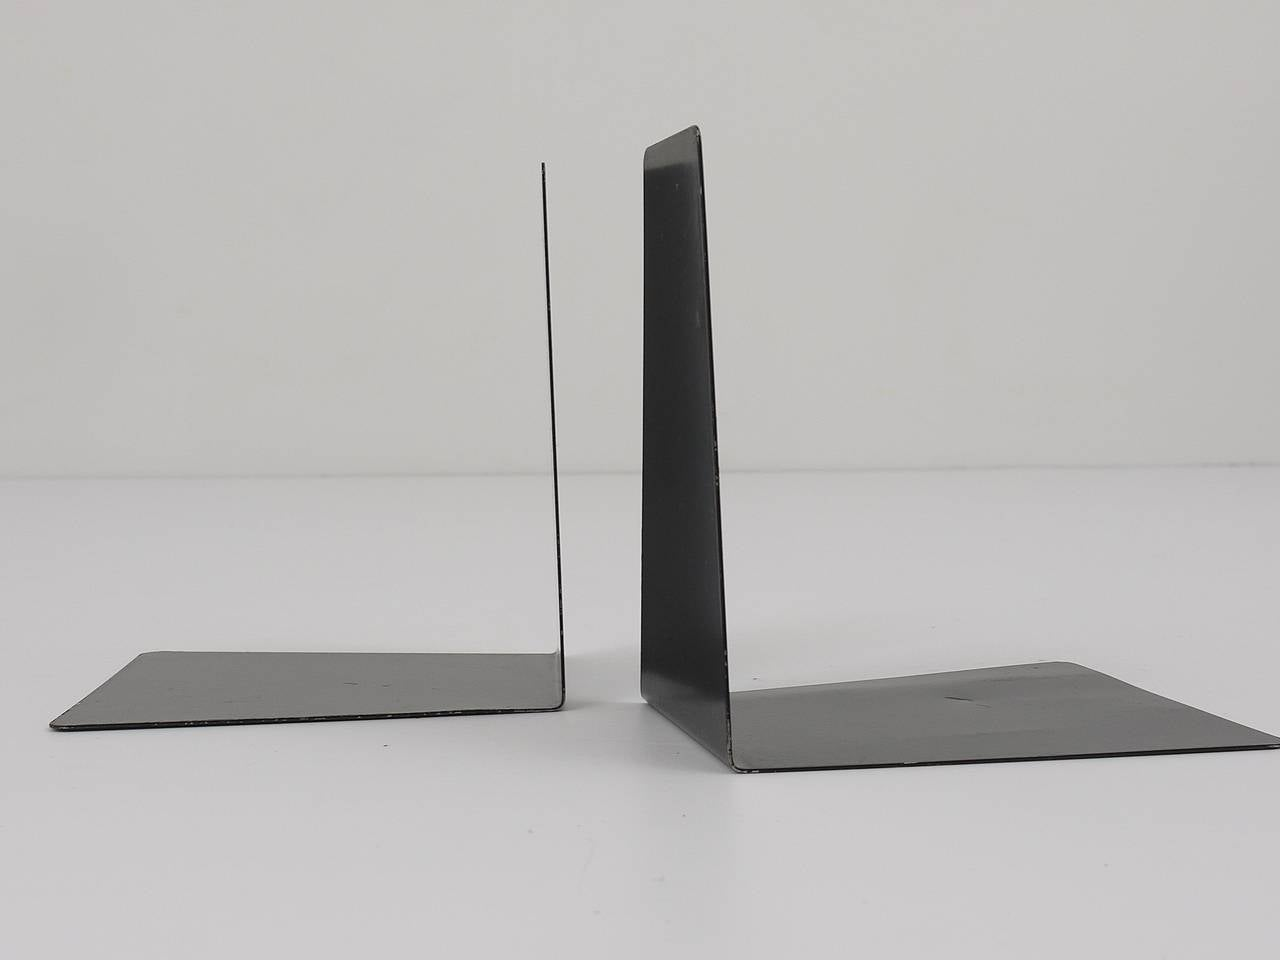 Bauhaus Black Metal Bookends by Marianne Brandt, 1930s for Ruppel, Germany For Sale 2